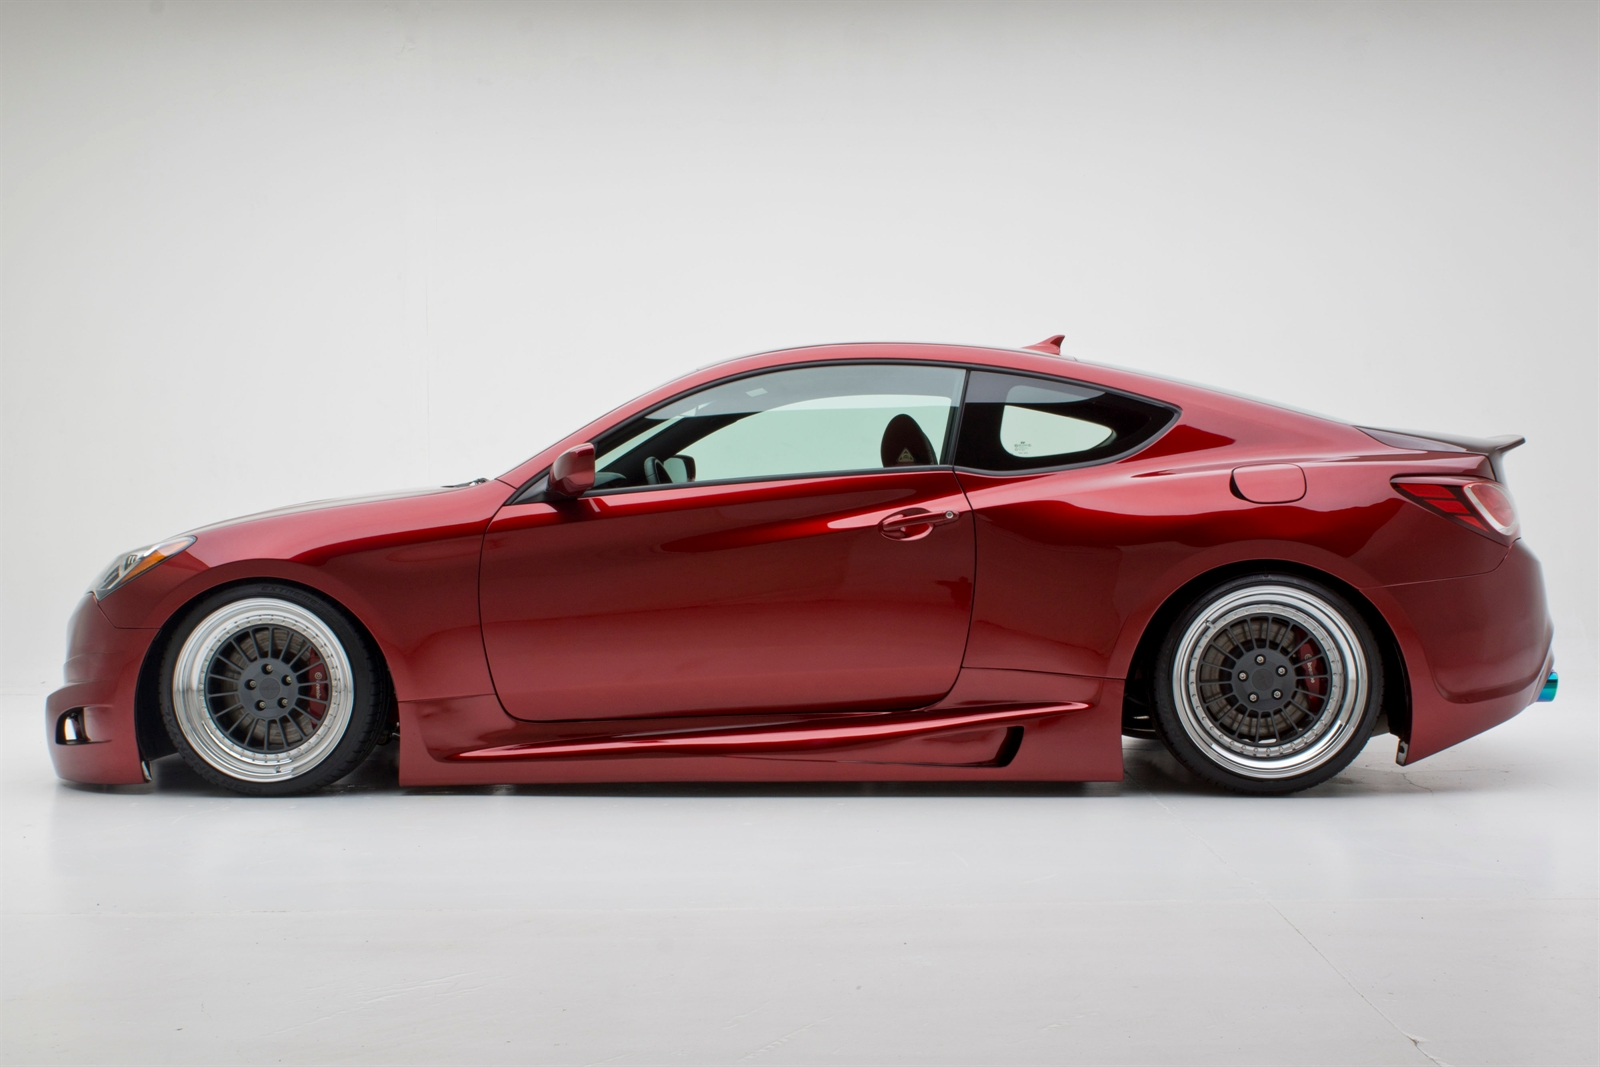 2012 Sema Hyundai Genesis Coupe By Fuelculture